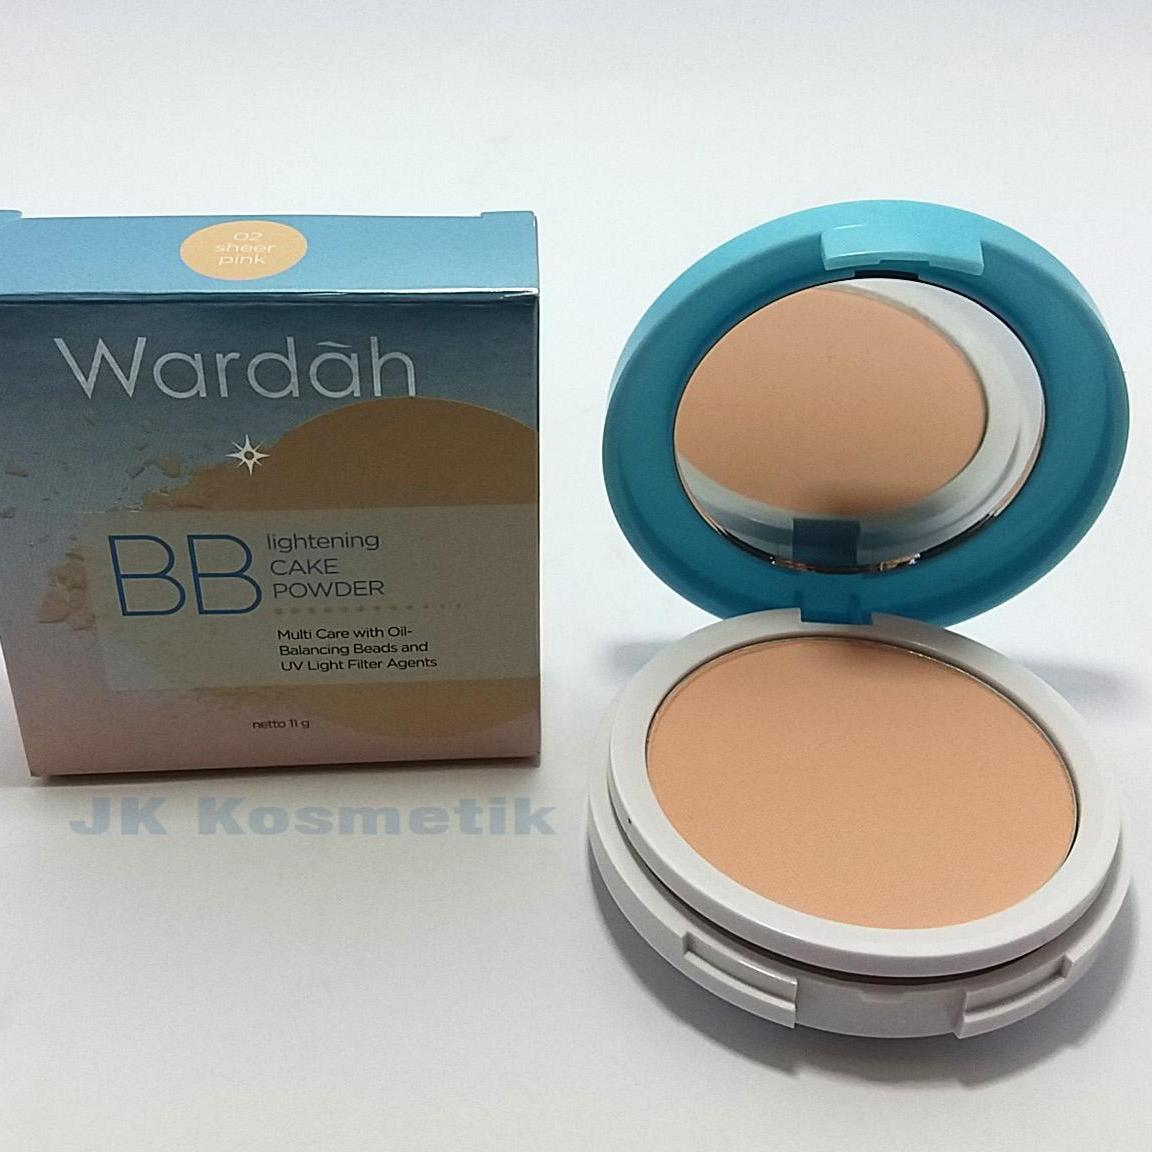 Harga Terbaru Makeup Wardah Lightening Series November 2018 Mantap Refill Two Way Cake Light Feel 03 Bb Powder 02 Sheer Pink